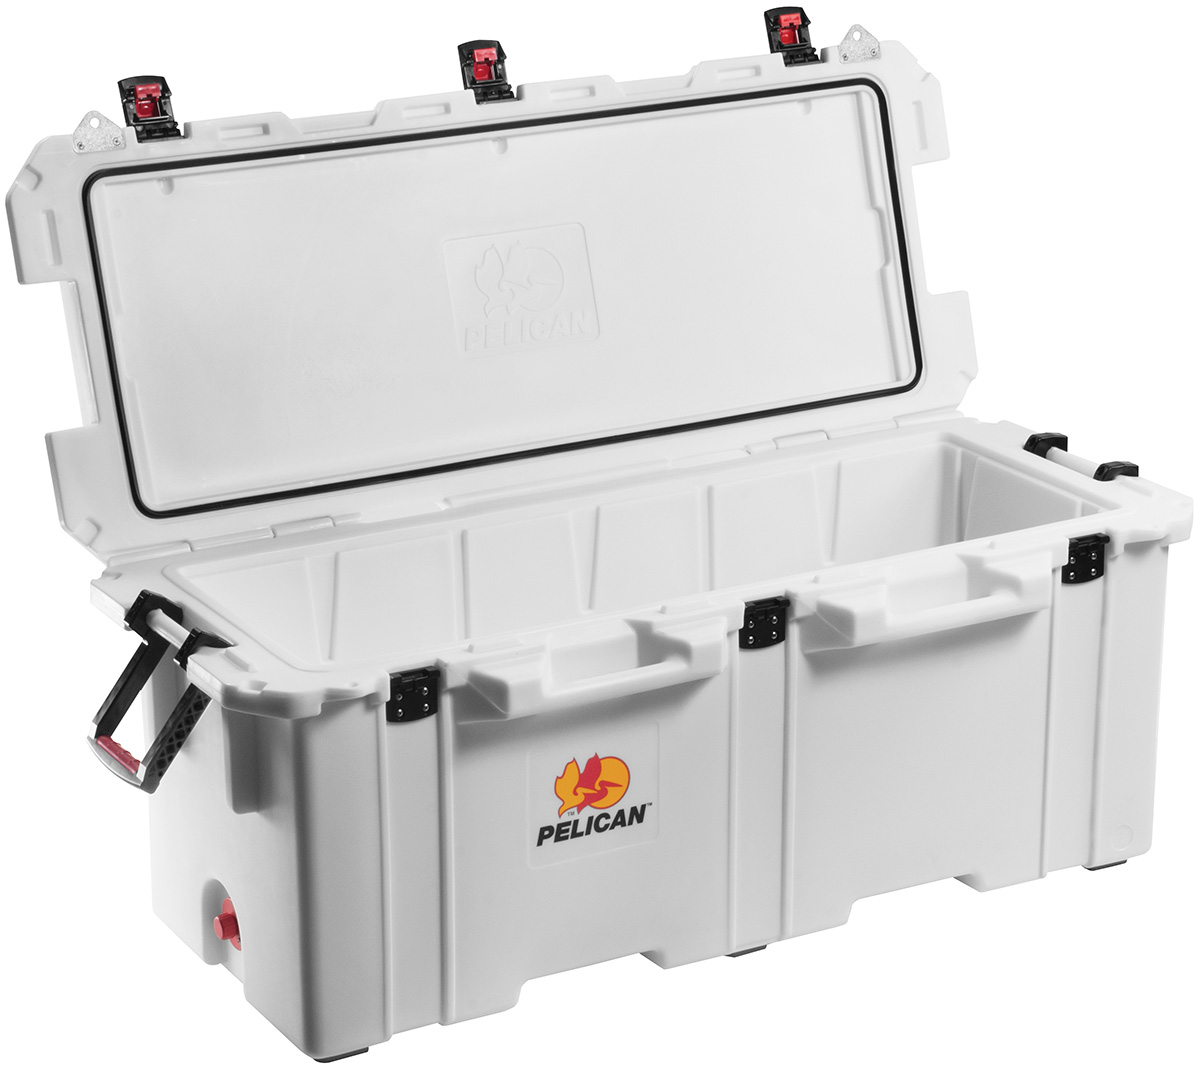 Pelican Coolers And Cases Volunteer Case Amp Container